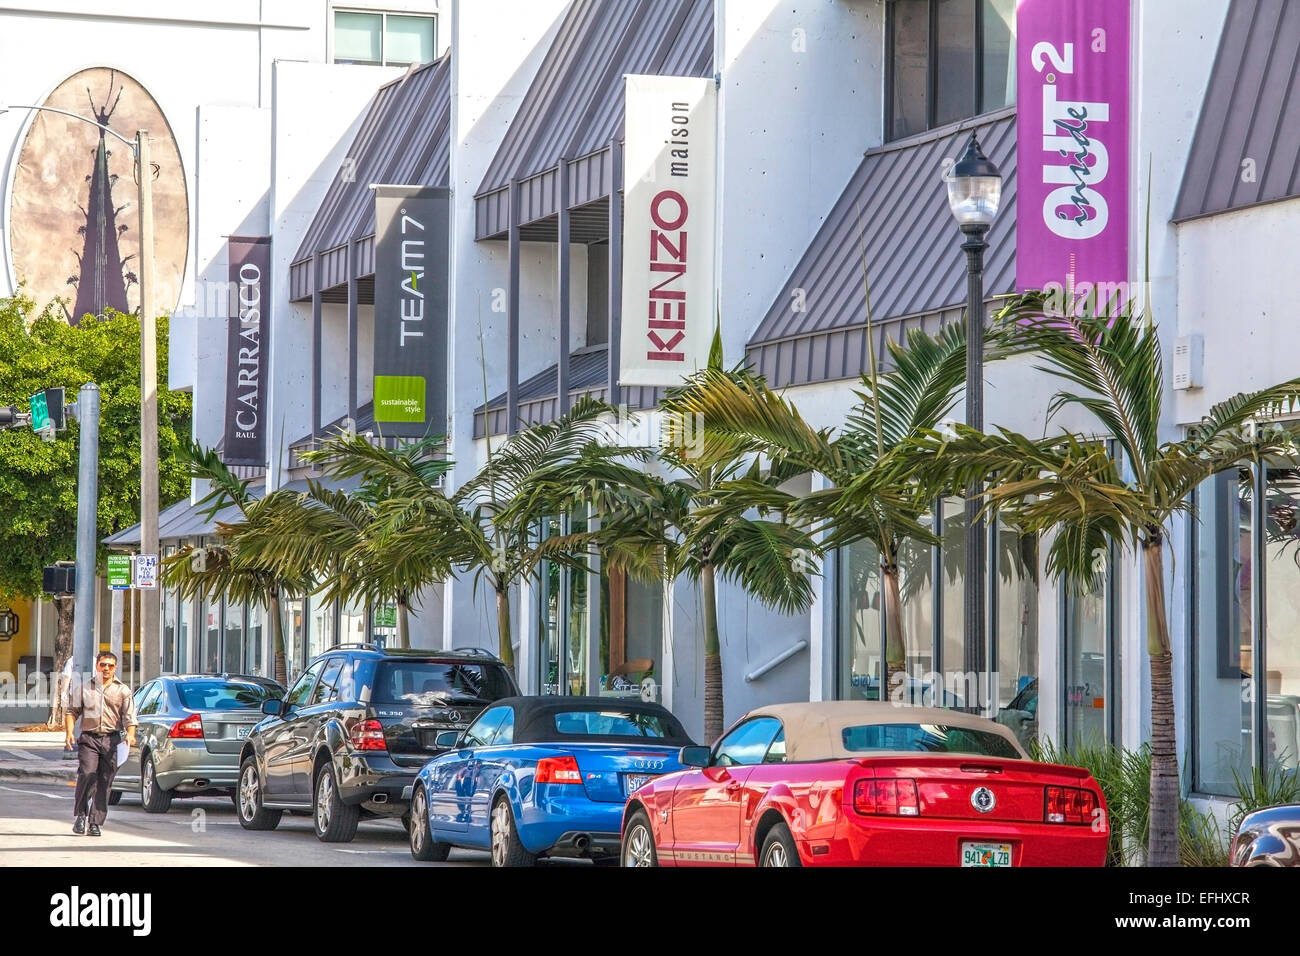 Deco Maison Usa Shops In The Design District Miami Florida Usa Stock Photo